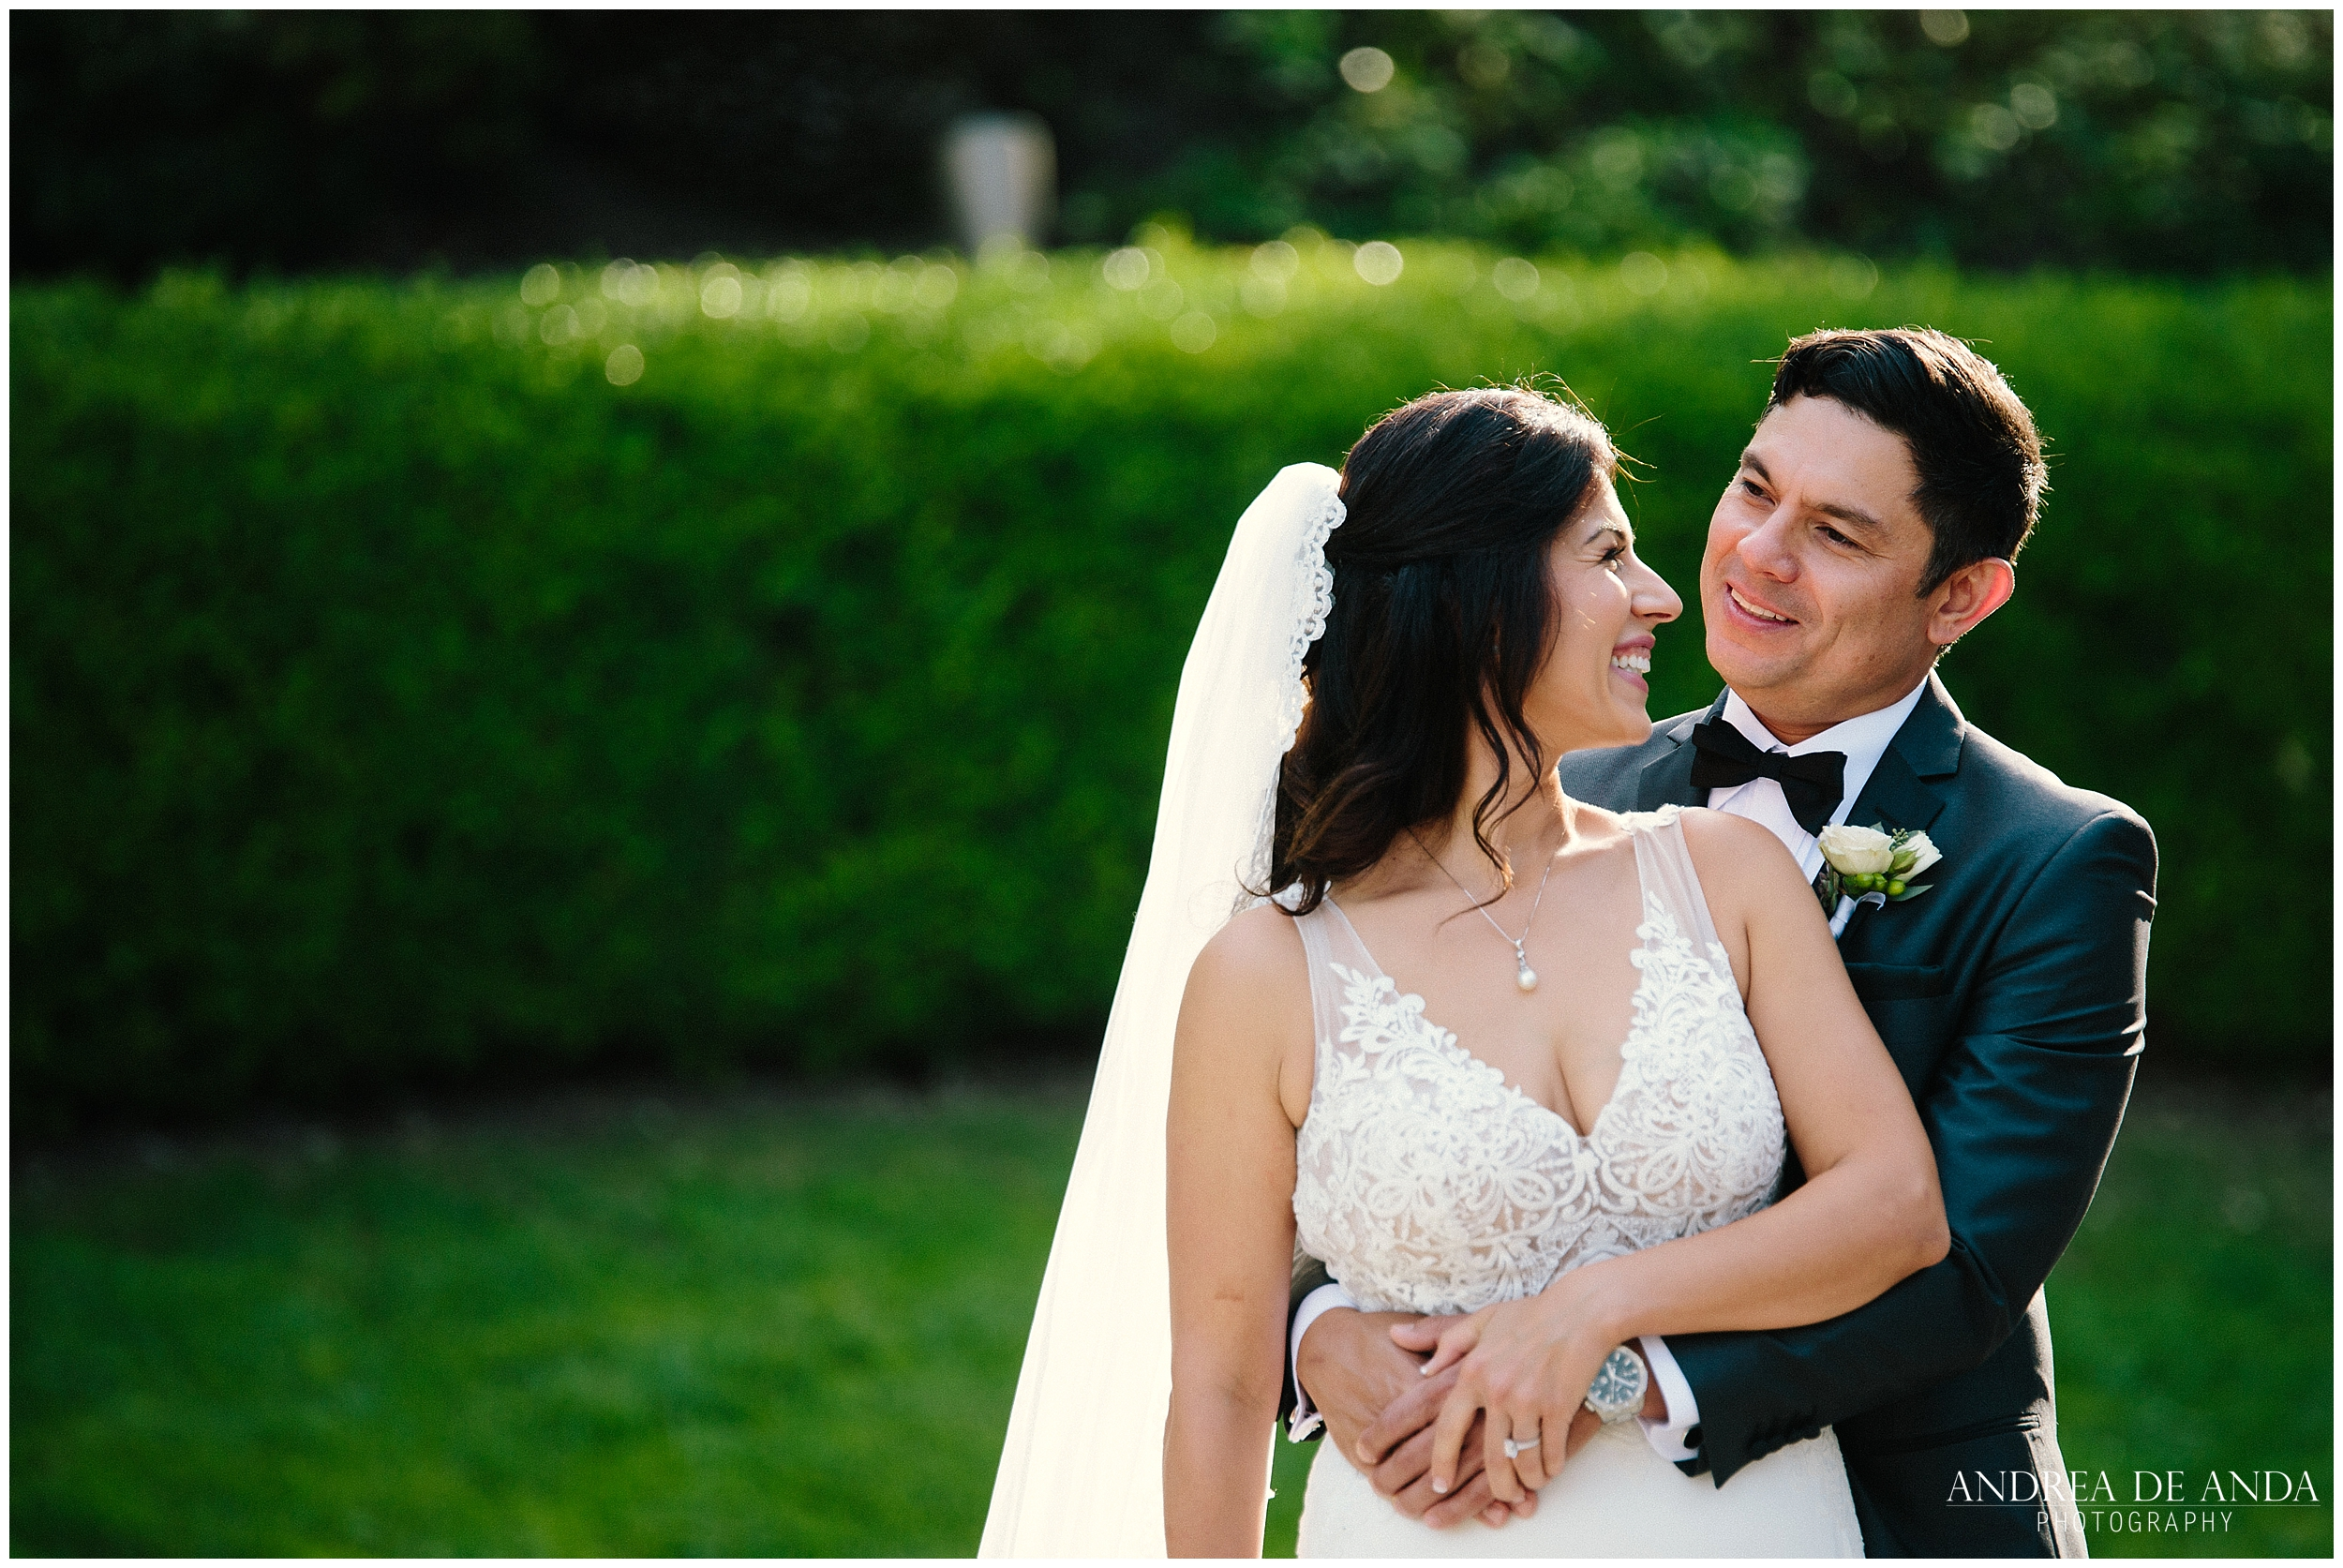 Bacara Santa Barbara Wedding by Andrea de Anda Photography__0012.jpg